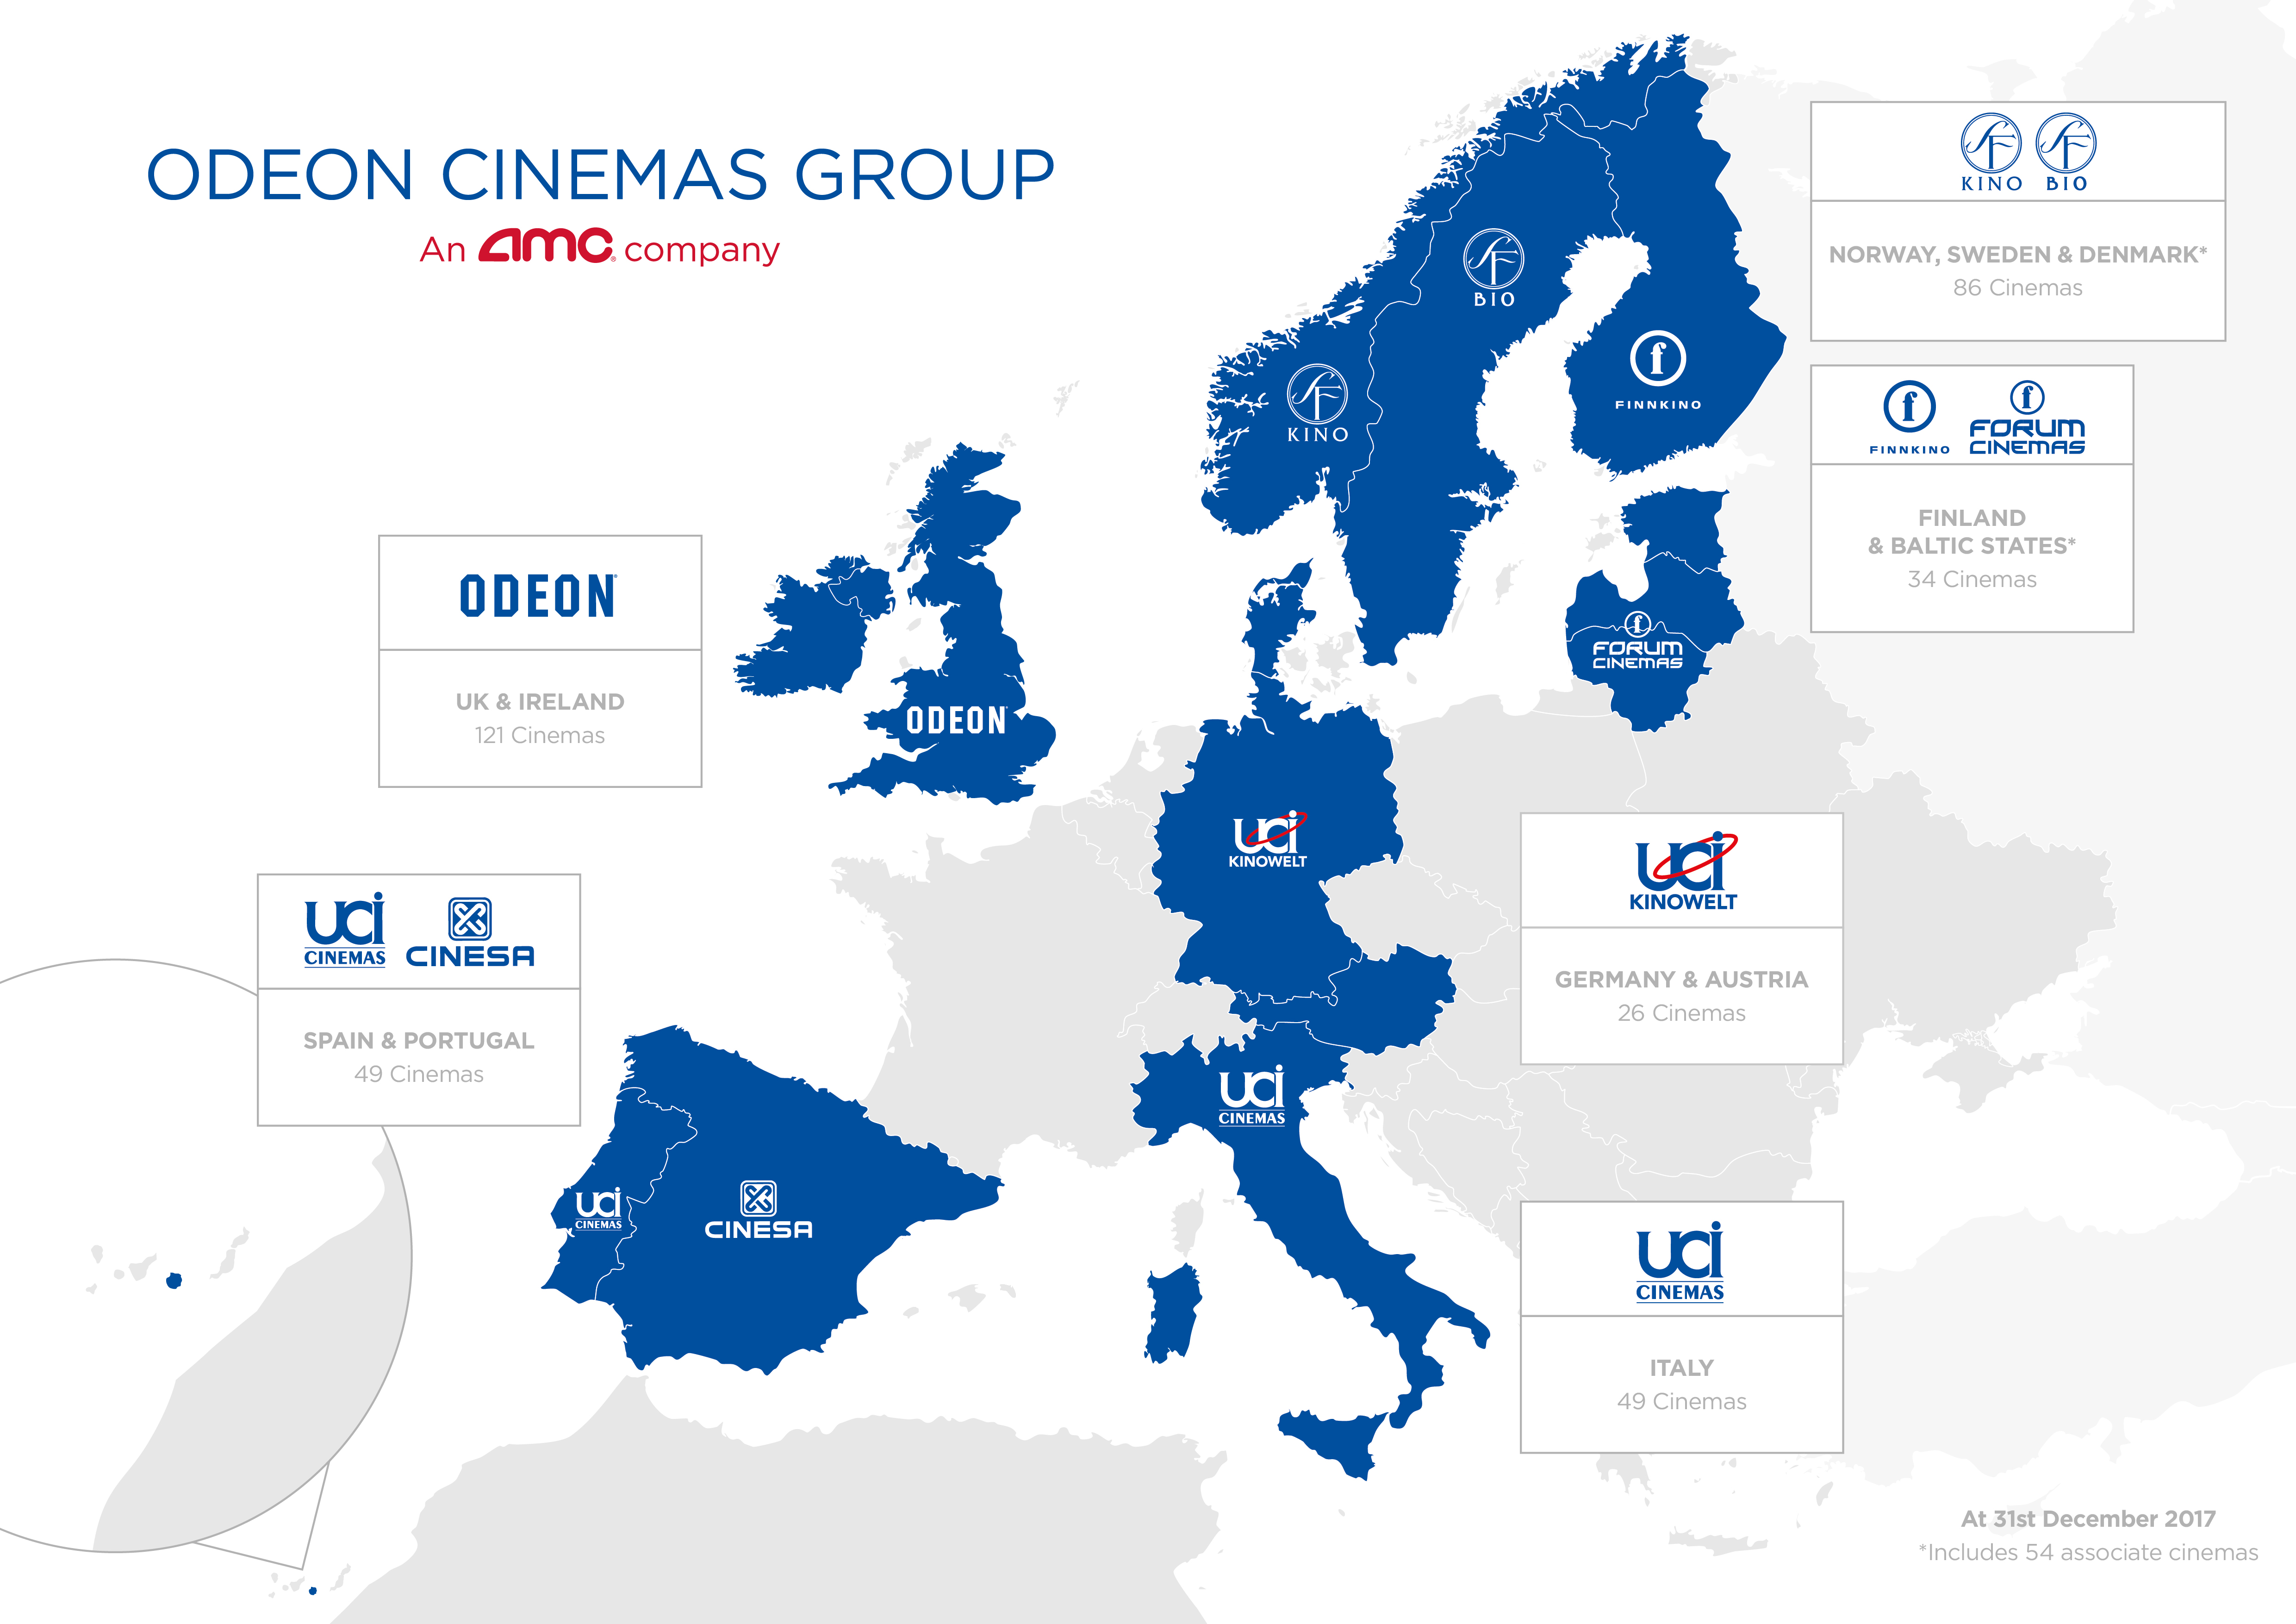 ODEON Brand Map